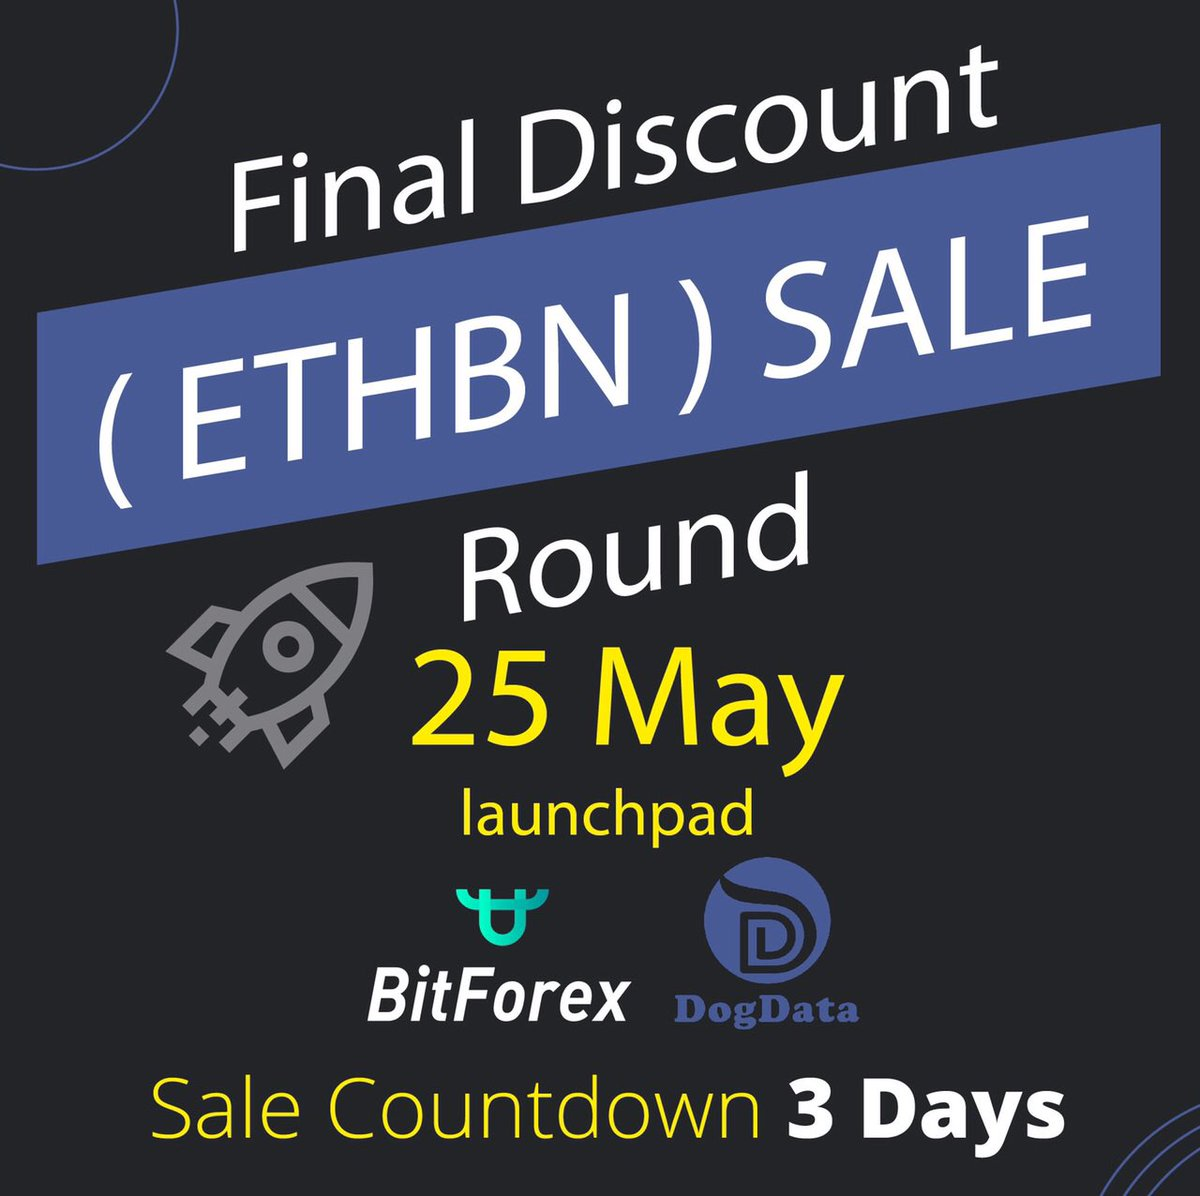 fast  #Bitforex Registration  +1  new 24-36 hour easy  #KYC fast track  Bitforex   #EtherBone ( ETHBN )  #IEO ROUND #2  Final Discounted sale Round 25 May    $0.01   http://www. BitForex.com/en/register        https:// event.bitforex.com/en/ETHBN.html      http://www. MyDogData.com      #cryptonews<br>http://pic.twitter.com/XEUnegn4Nv